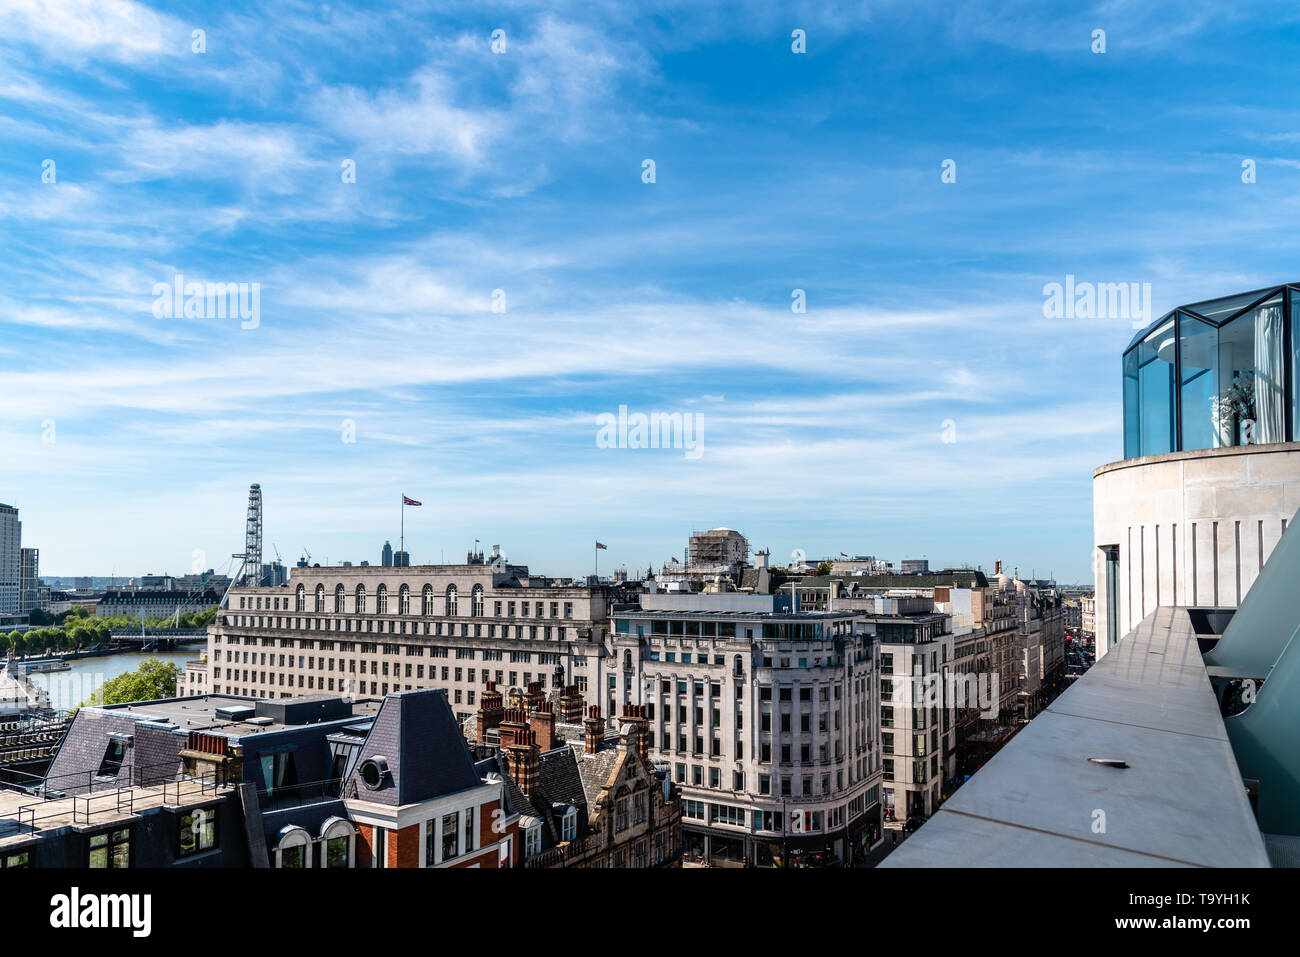 London, UK - May 14, 2019: Cityscape of the City of London. High angle view from penthouse a sunny day Stock Photo